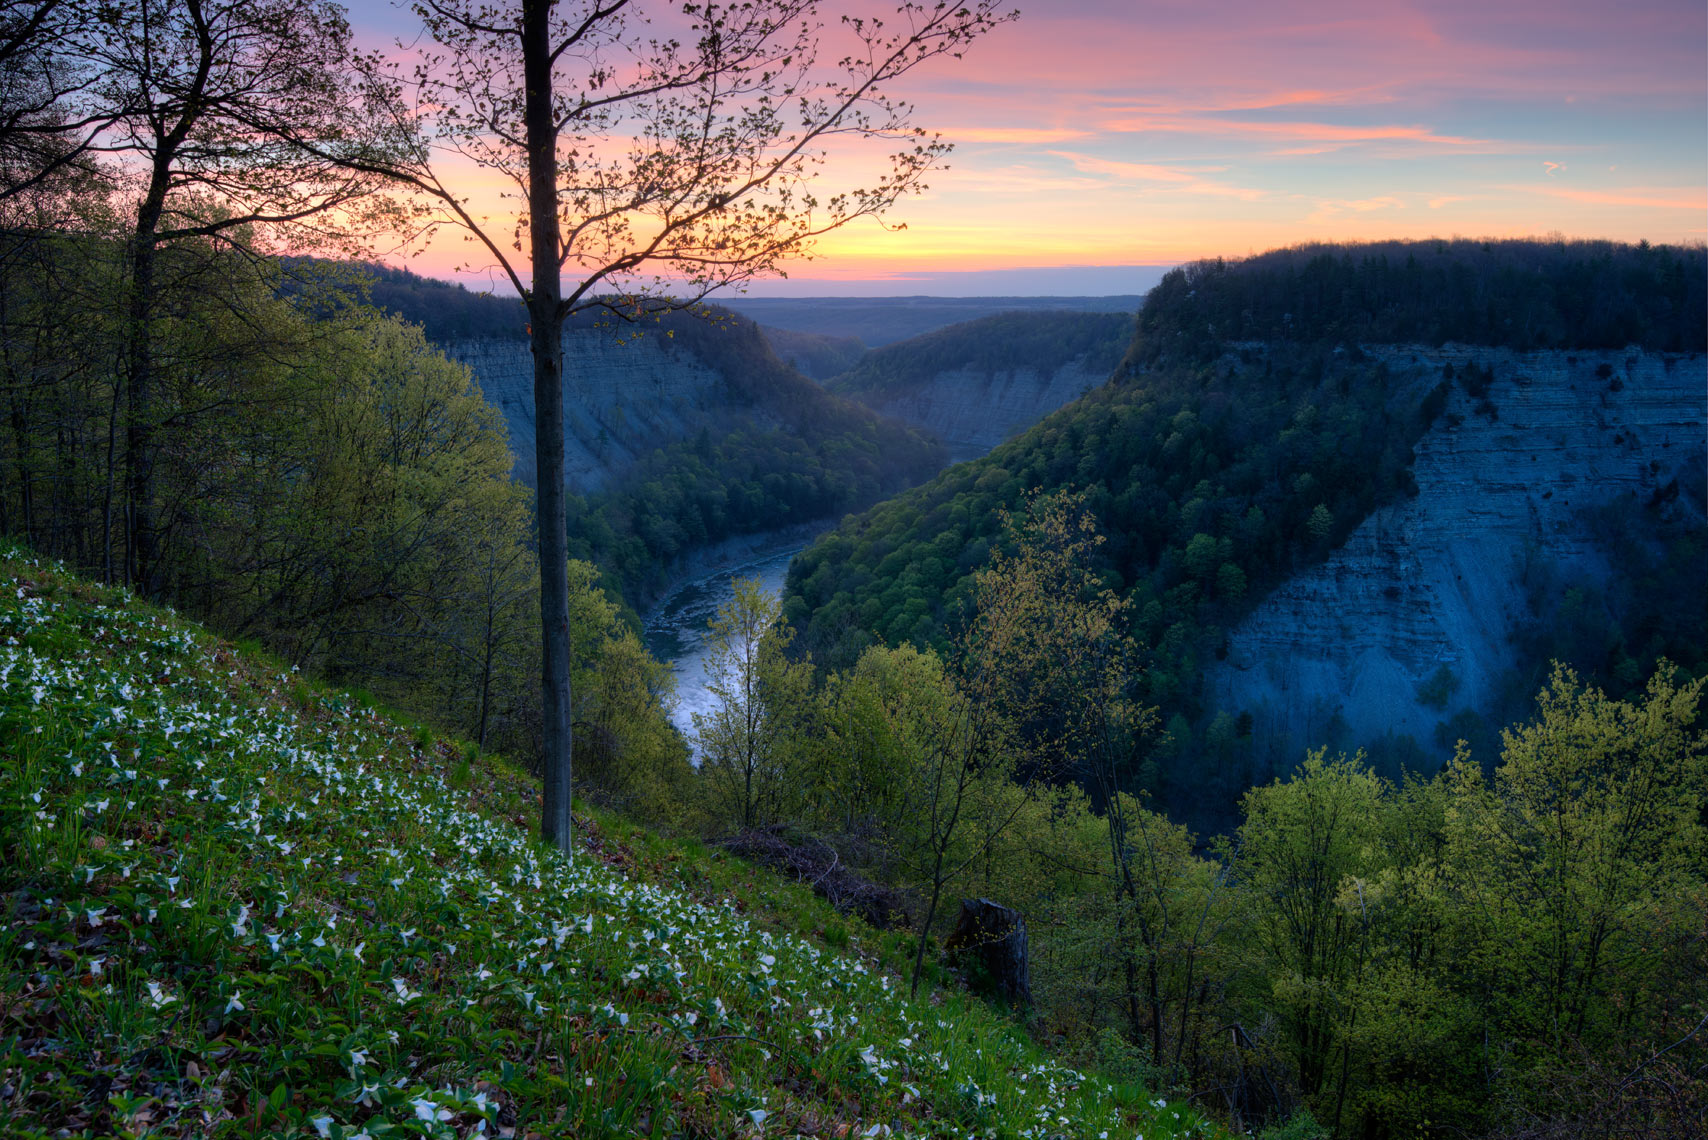 Genesee River Gorge at Dawn, Letchworth State Park, Finger Lakes, New York State